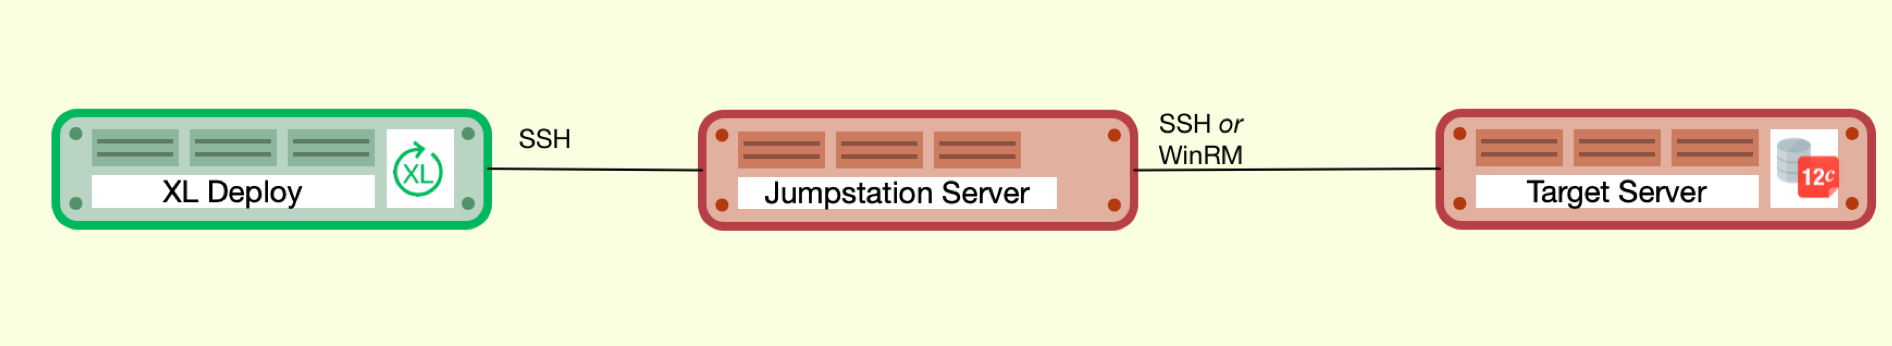 XL Deploy connects using jumpstation to target server